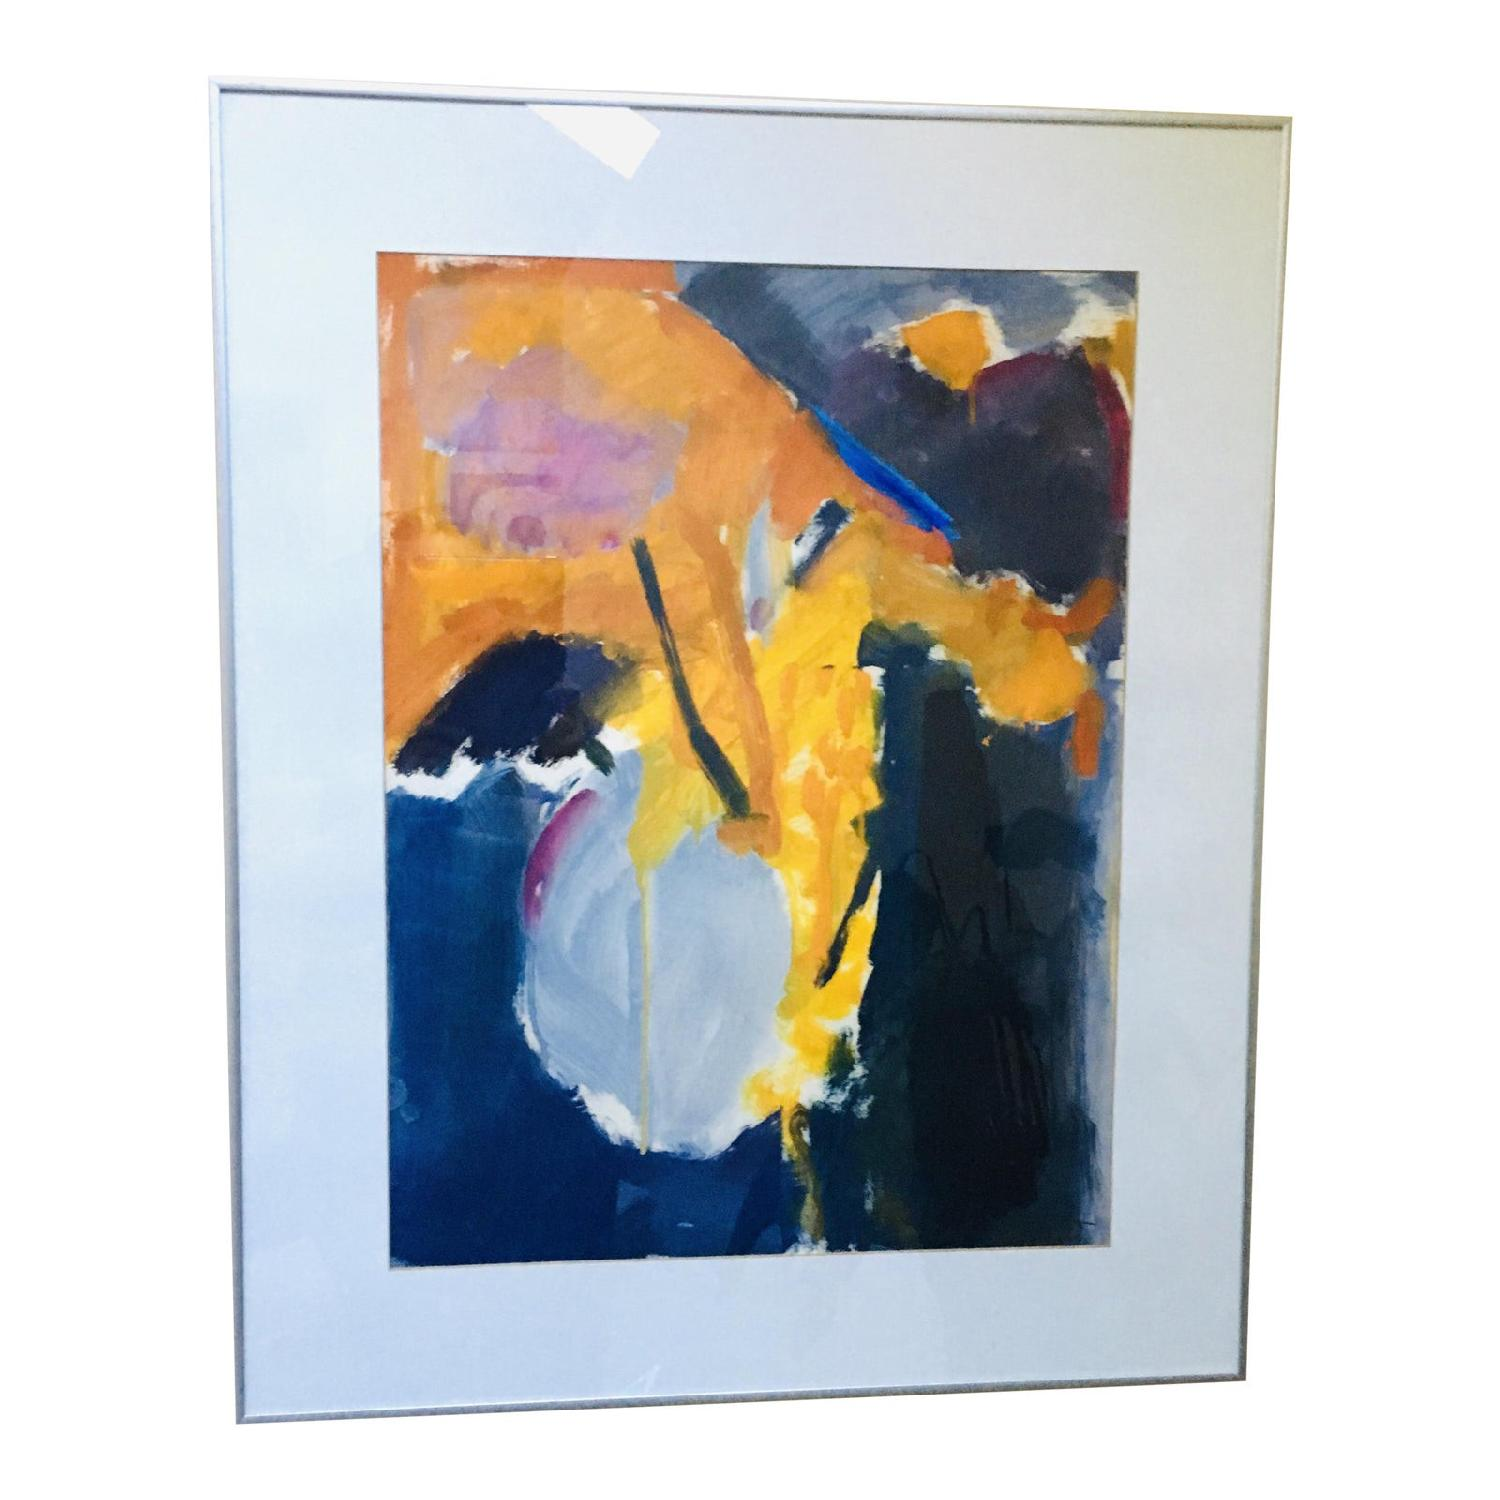 1980s Gray Vase Abstract Expressionist Still Life Painting - image-5